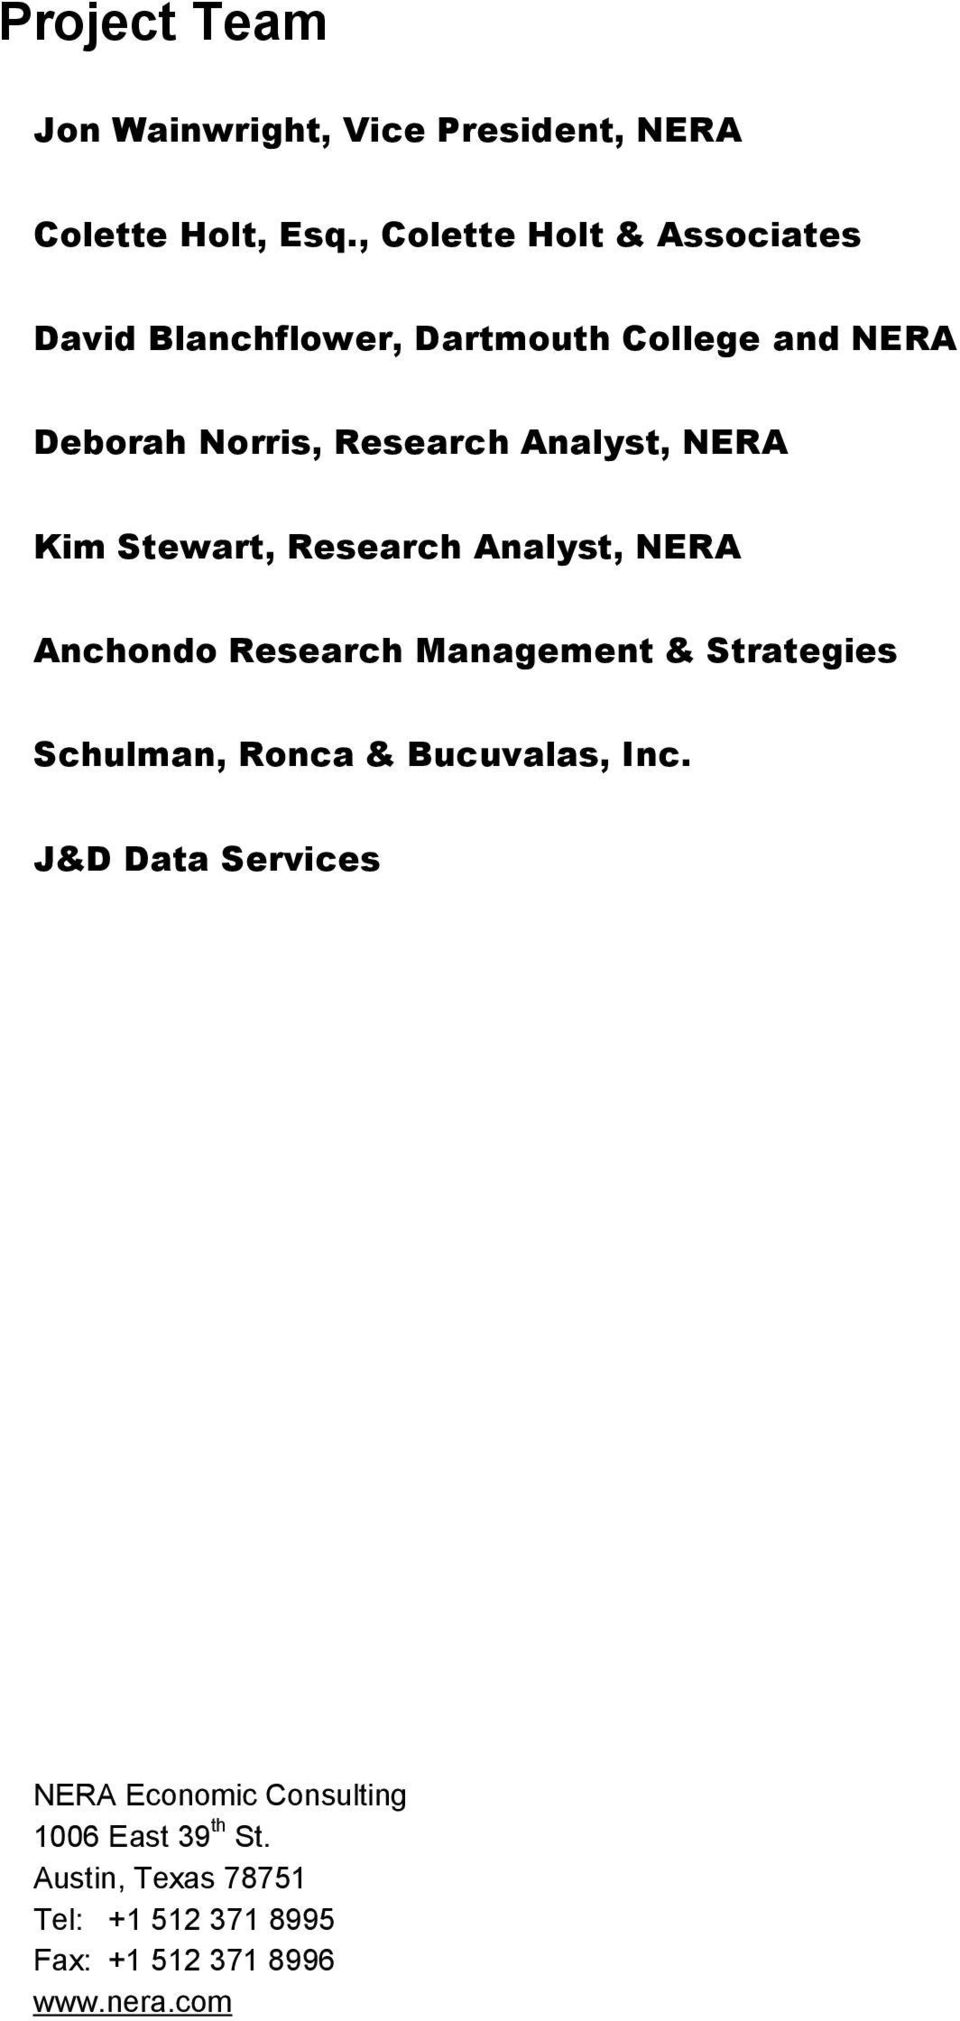 Analyst, NERA Kim Stewart, Research Analyst, NERA Anchondo Research Management & Strategies Schulman, Ronca